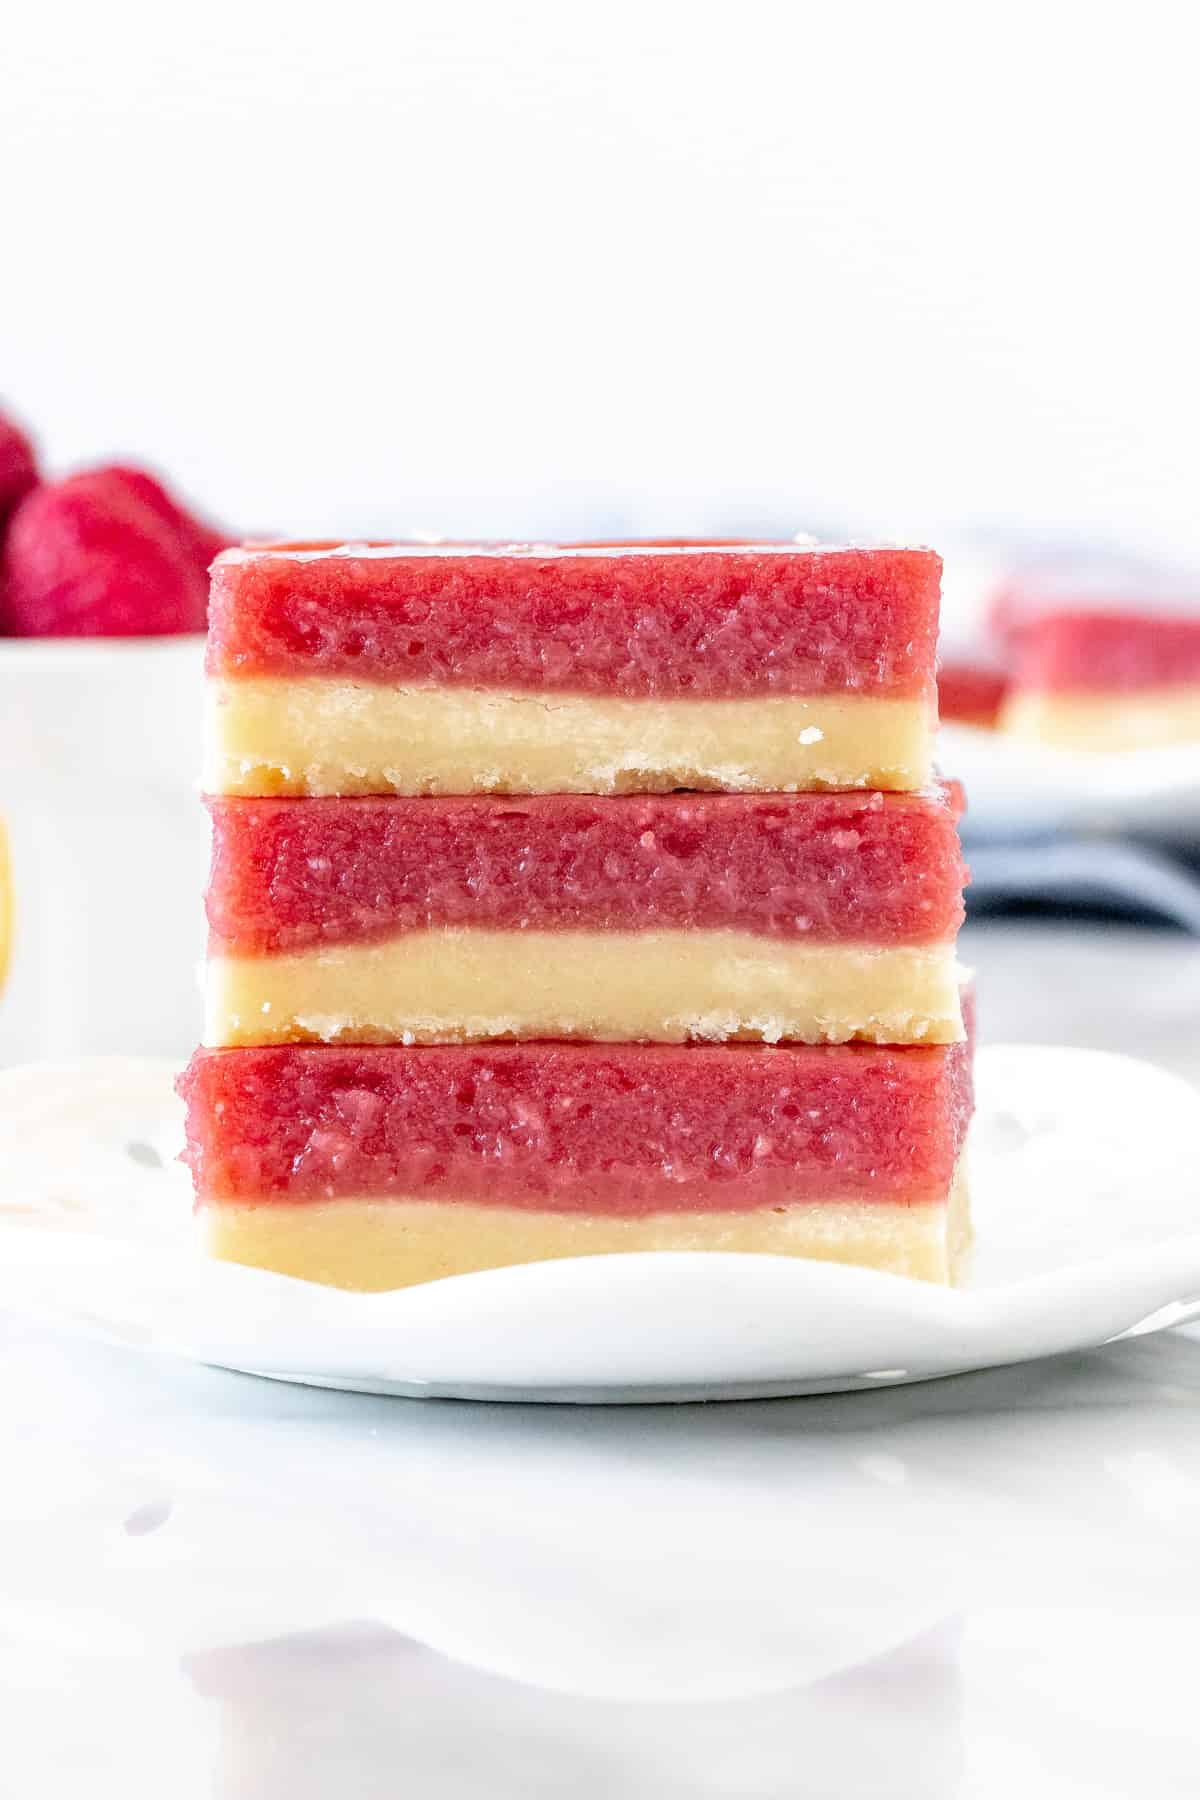 Stack of 3 lemon raspberry bars